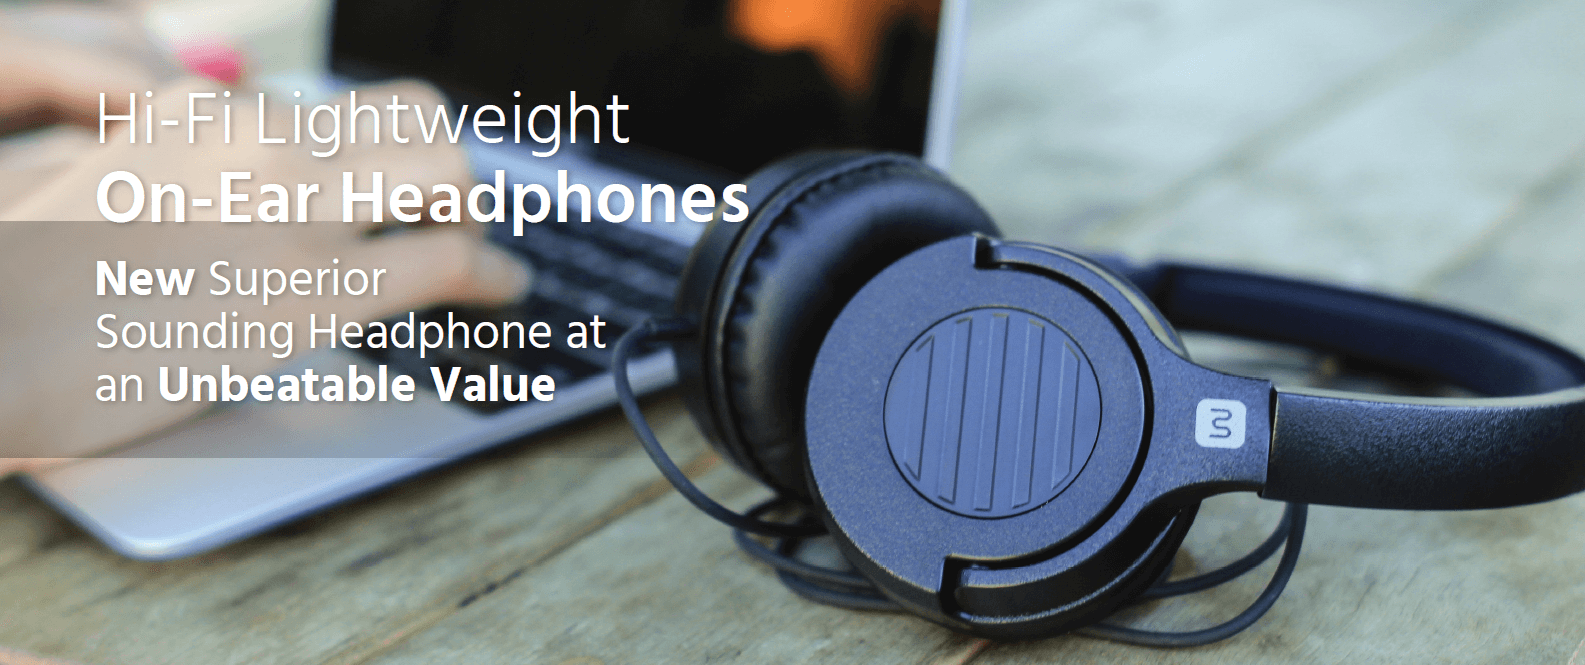 Hi-Fi Lightweight On-Ear Headphones